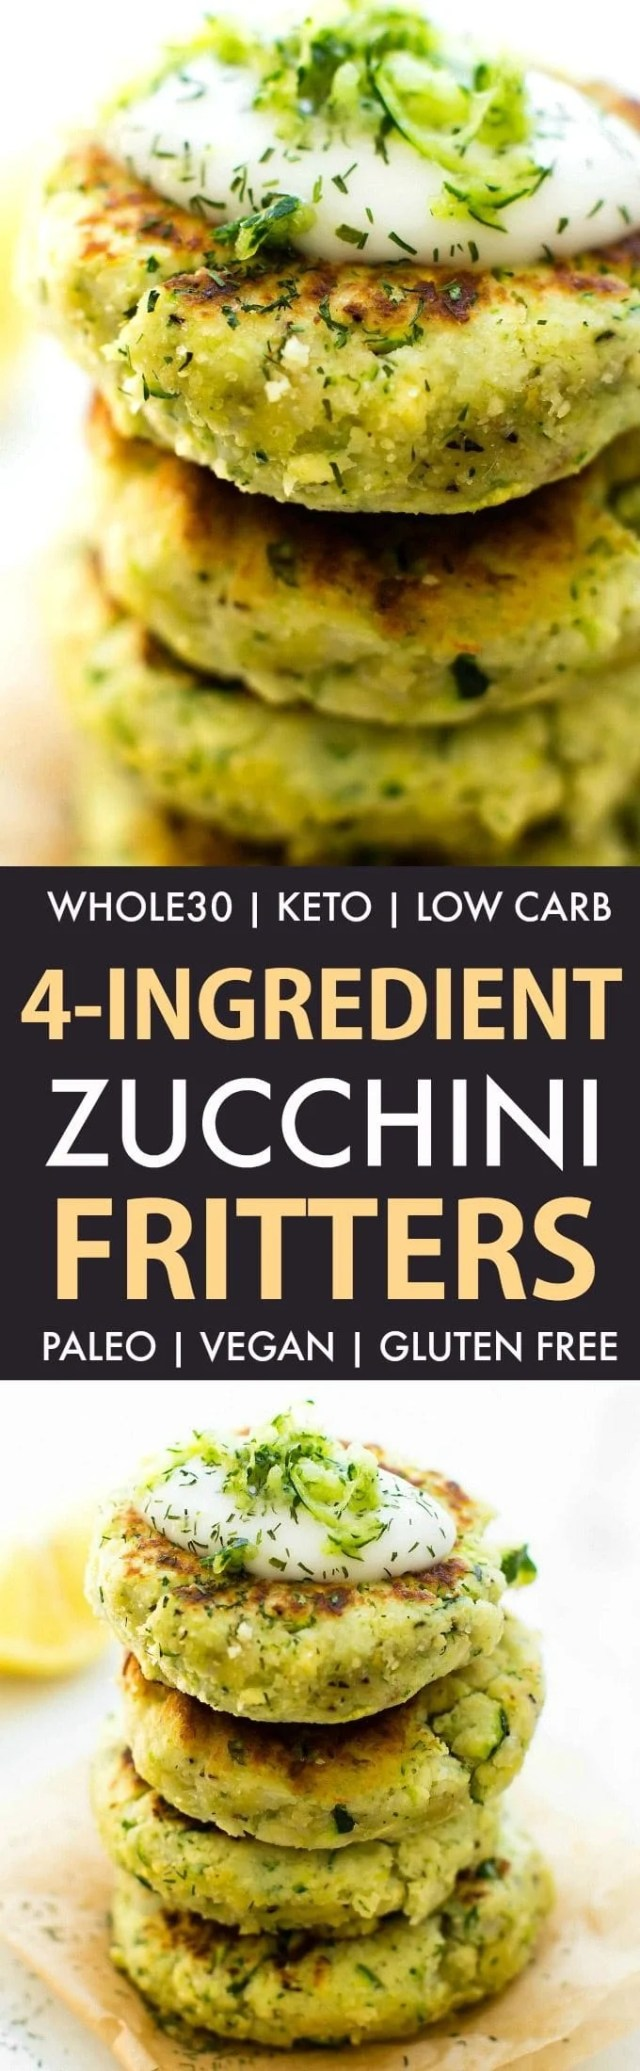 4-Ingredient Zucchini Fritters (Whole30, Keto, Paleo, Vegan, Gluten Free)- Easy veggie fritters packed with cauliflower rice and whole30 approved lunch, dinner or snack! #whole30 #whole30approved #whole30dinner #keto - Recipe on thebigmansworld.com